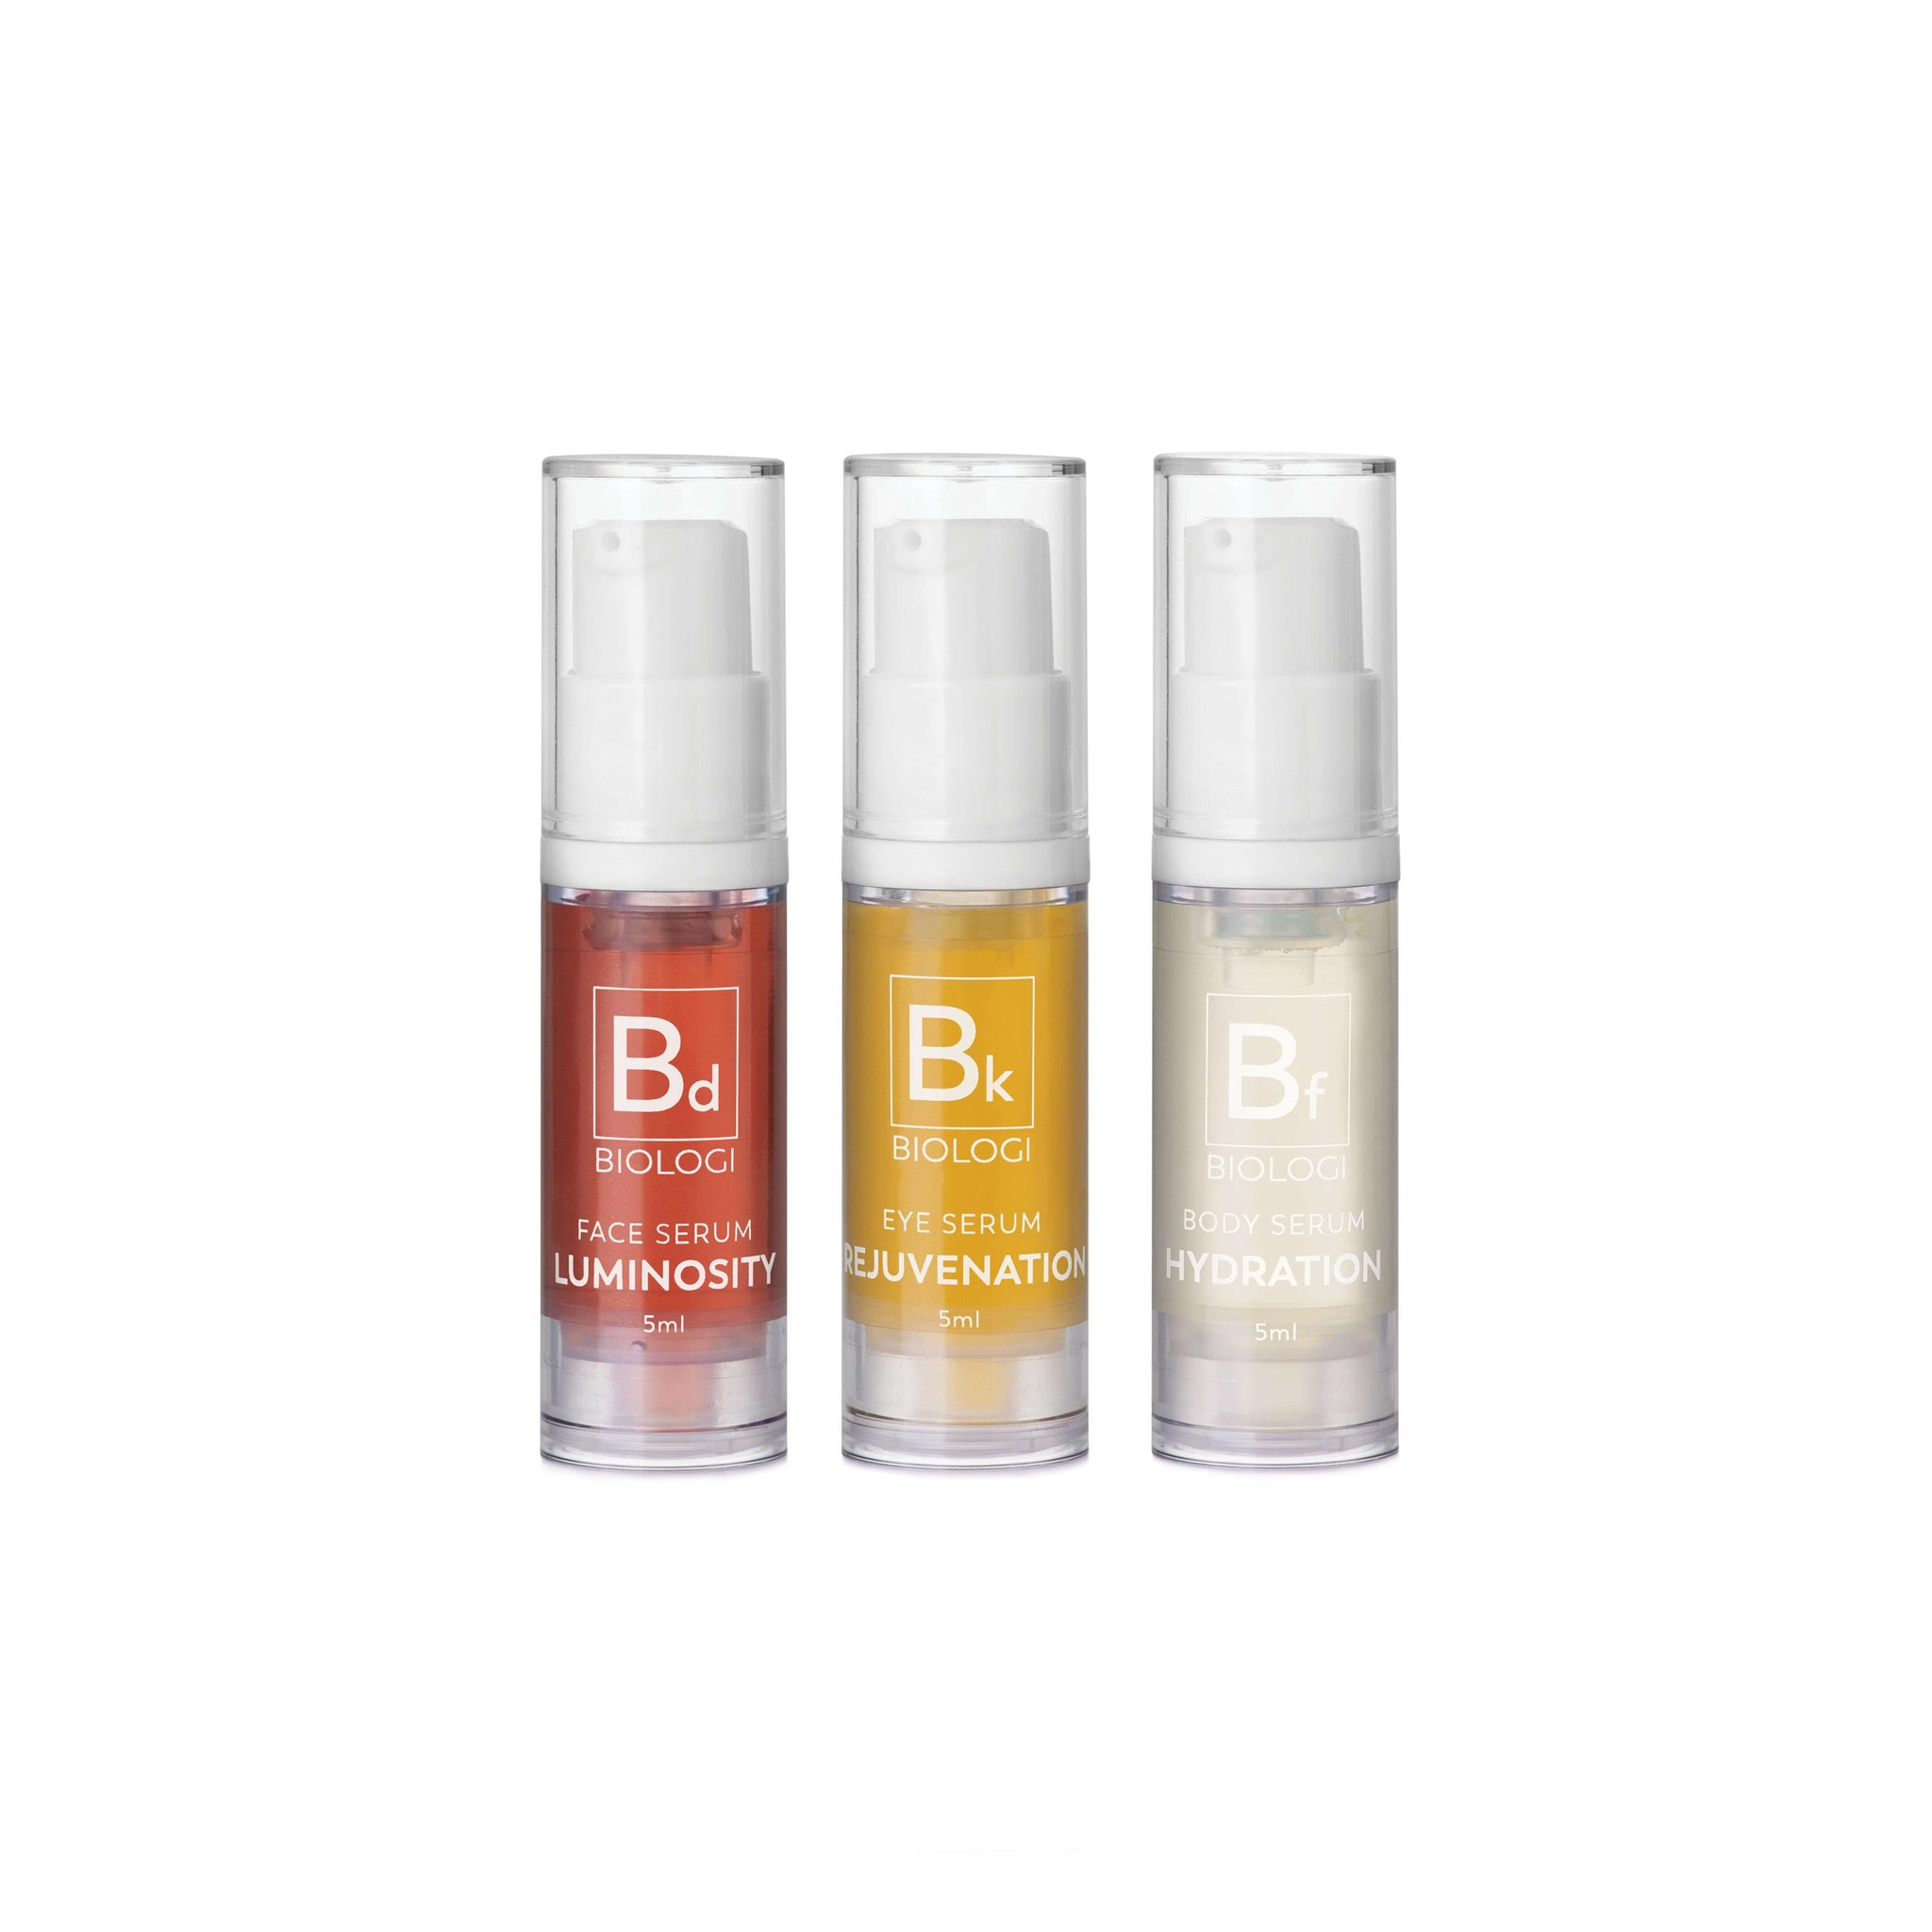 Biologi, face serum, Biologi Nederland, Biologi x Nourished.nl, Nourished.nl, Body Serum, Face Serum, Eye Serum